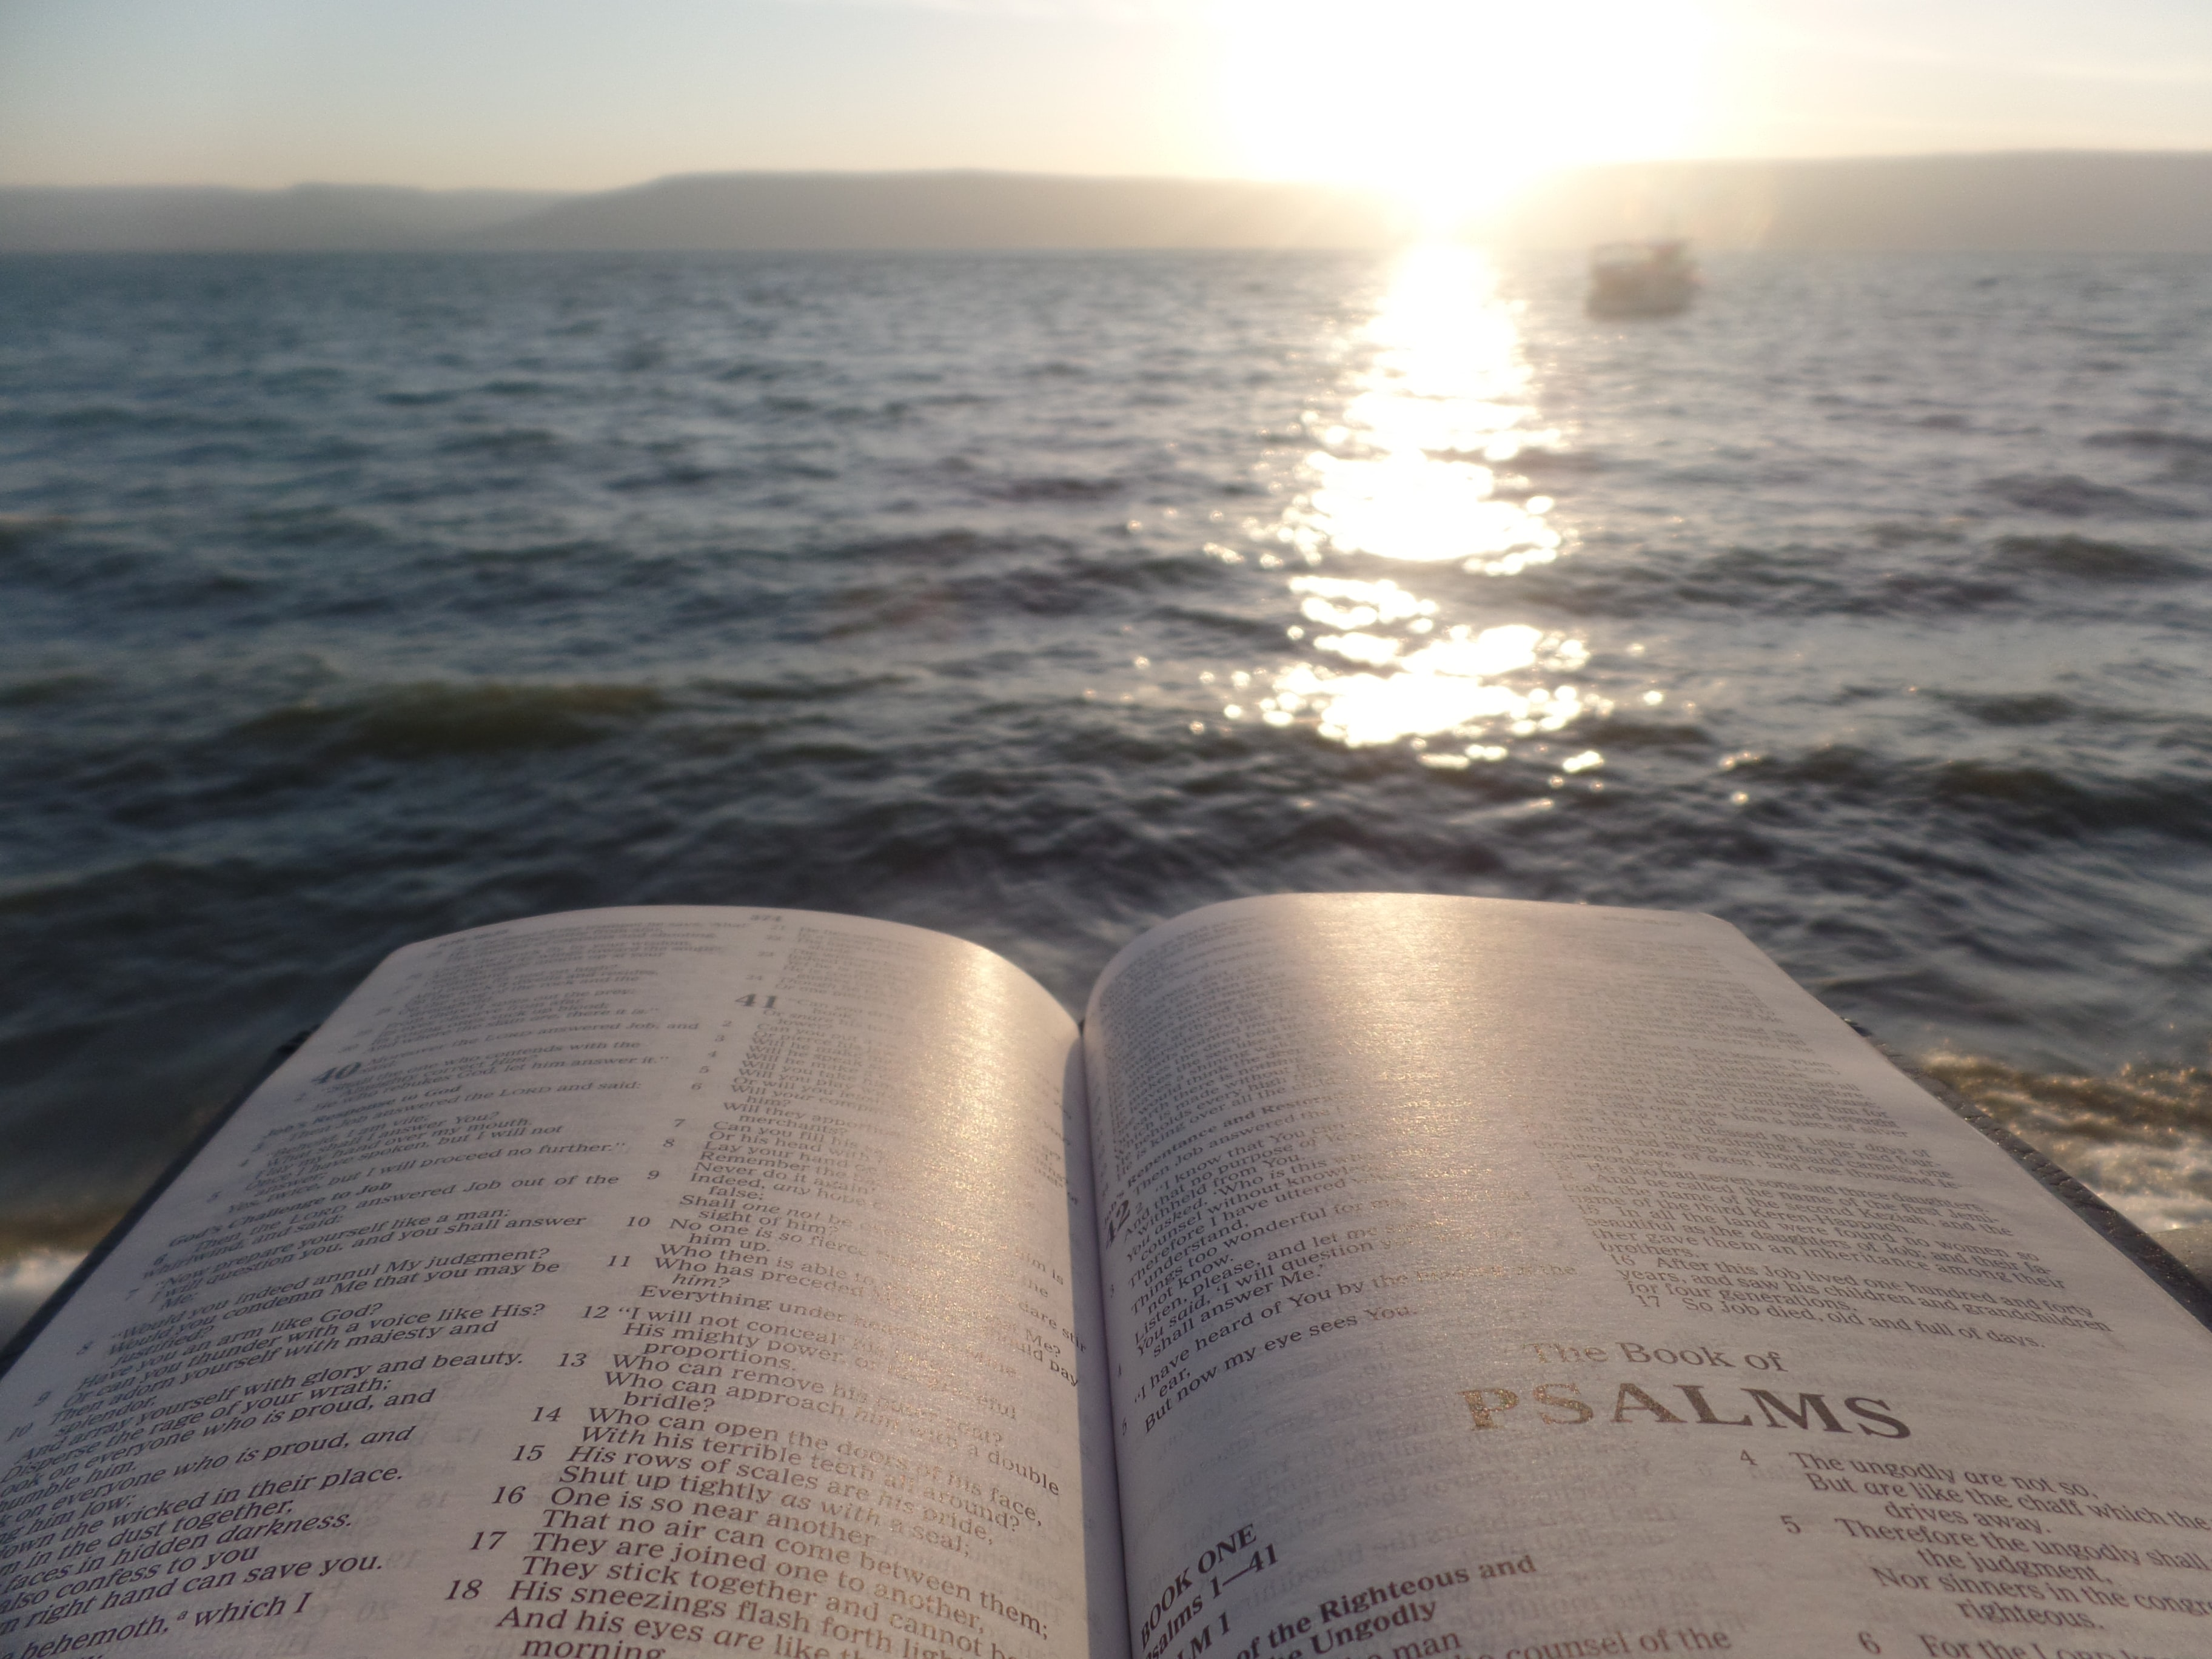 An open book with the ocean in the background.